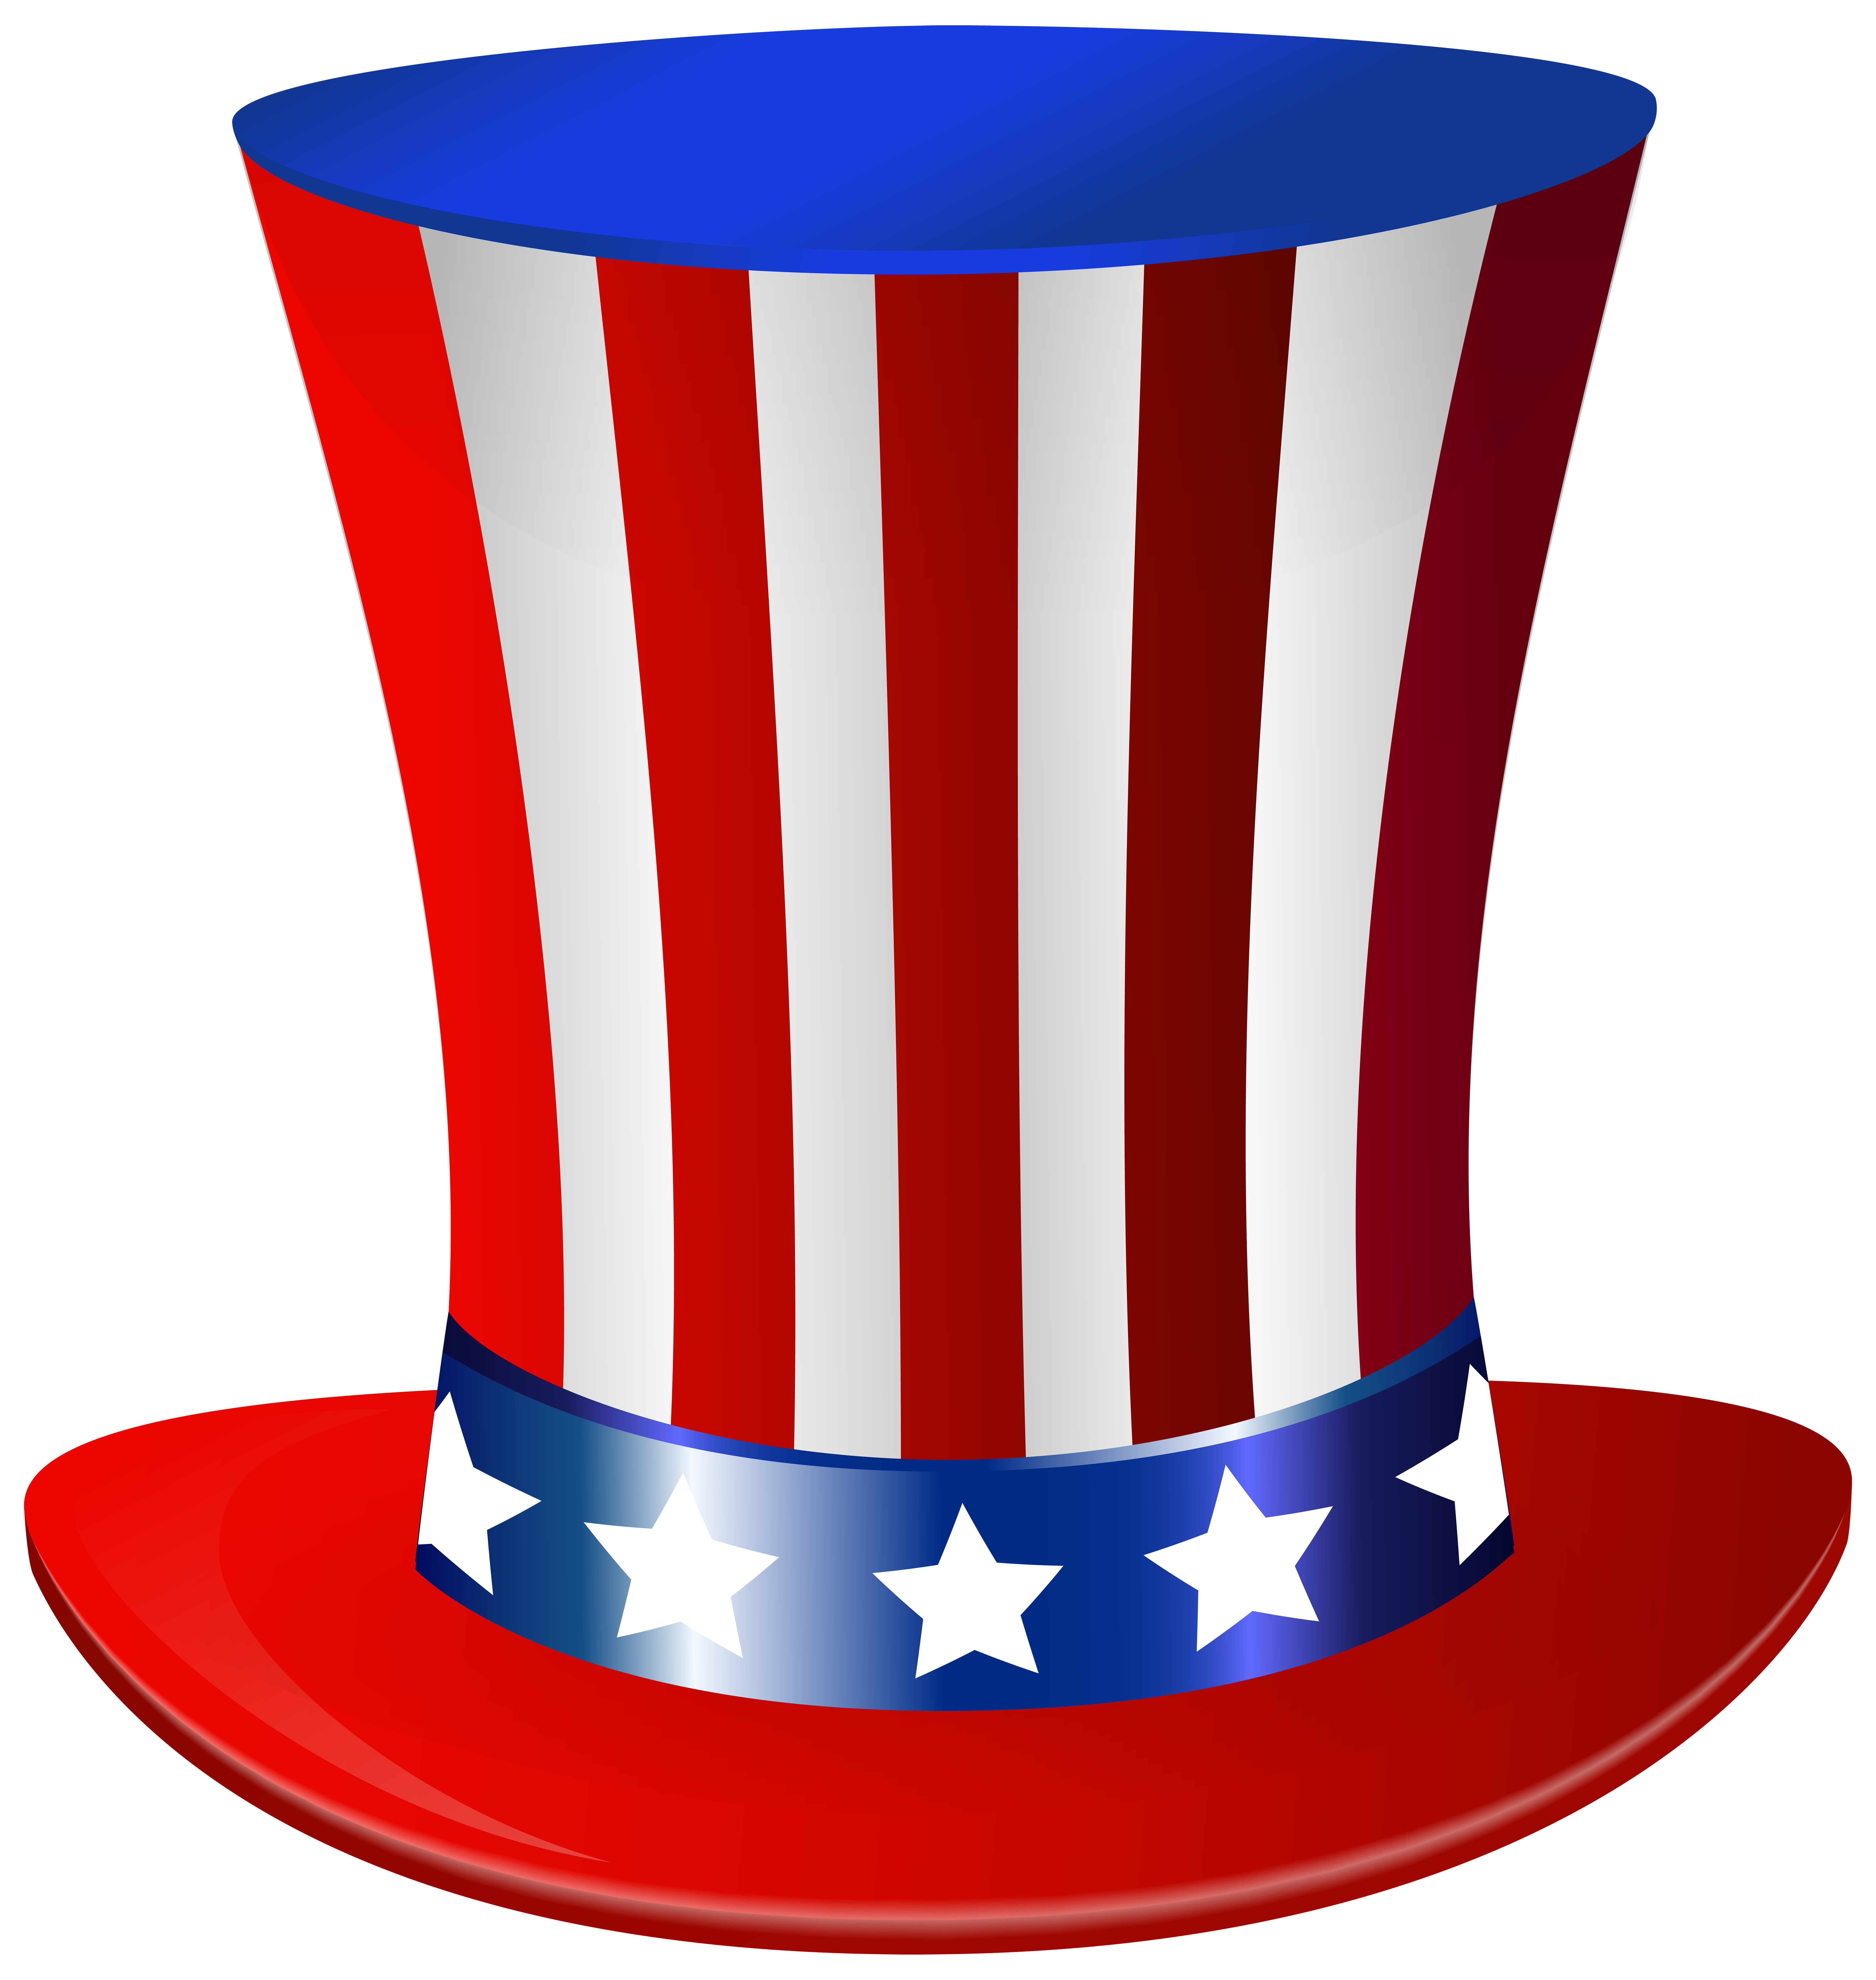 Uncle Sam Hat Png Clip Art Image Gallery Yopriceville High Quality Images And Transparent Png Fourth Of July Crafts For Kids 4th Of July Images Uncle Sam